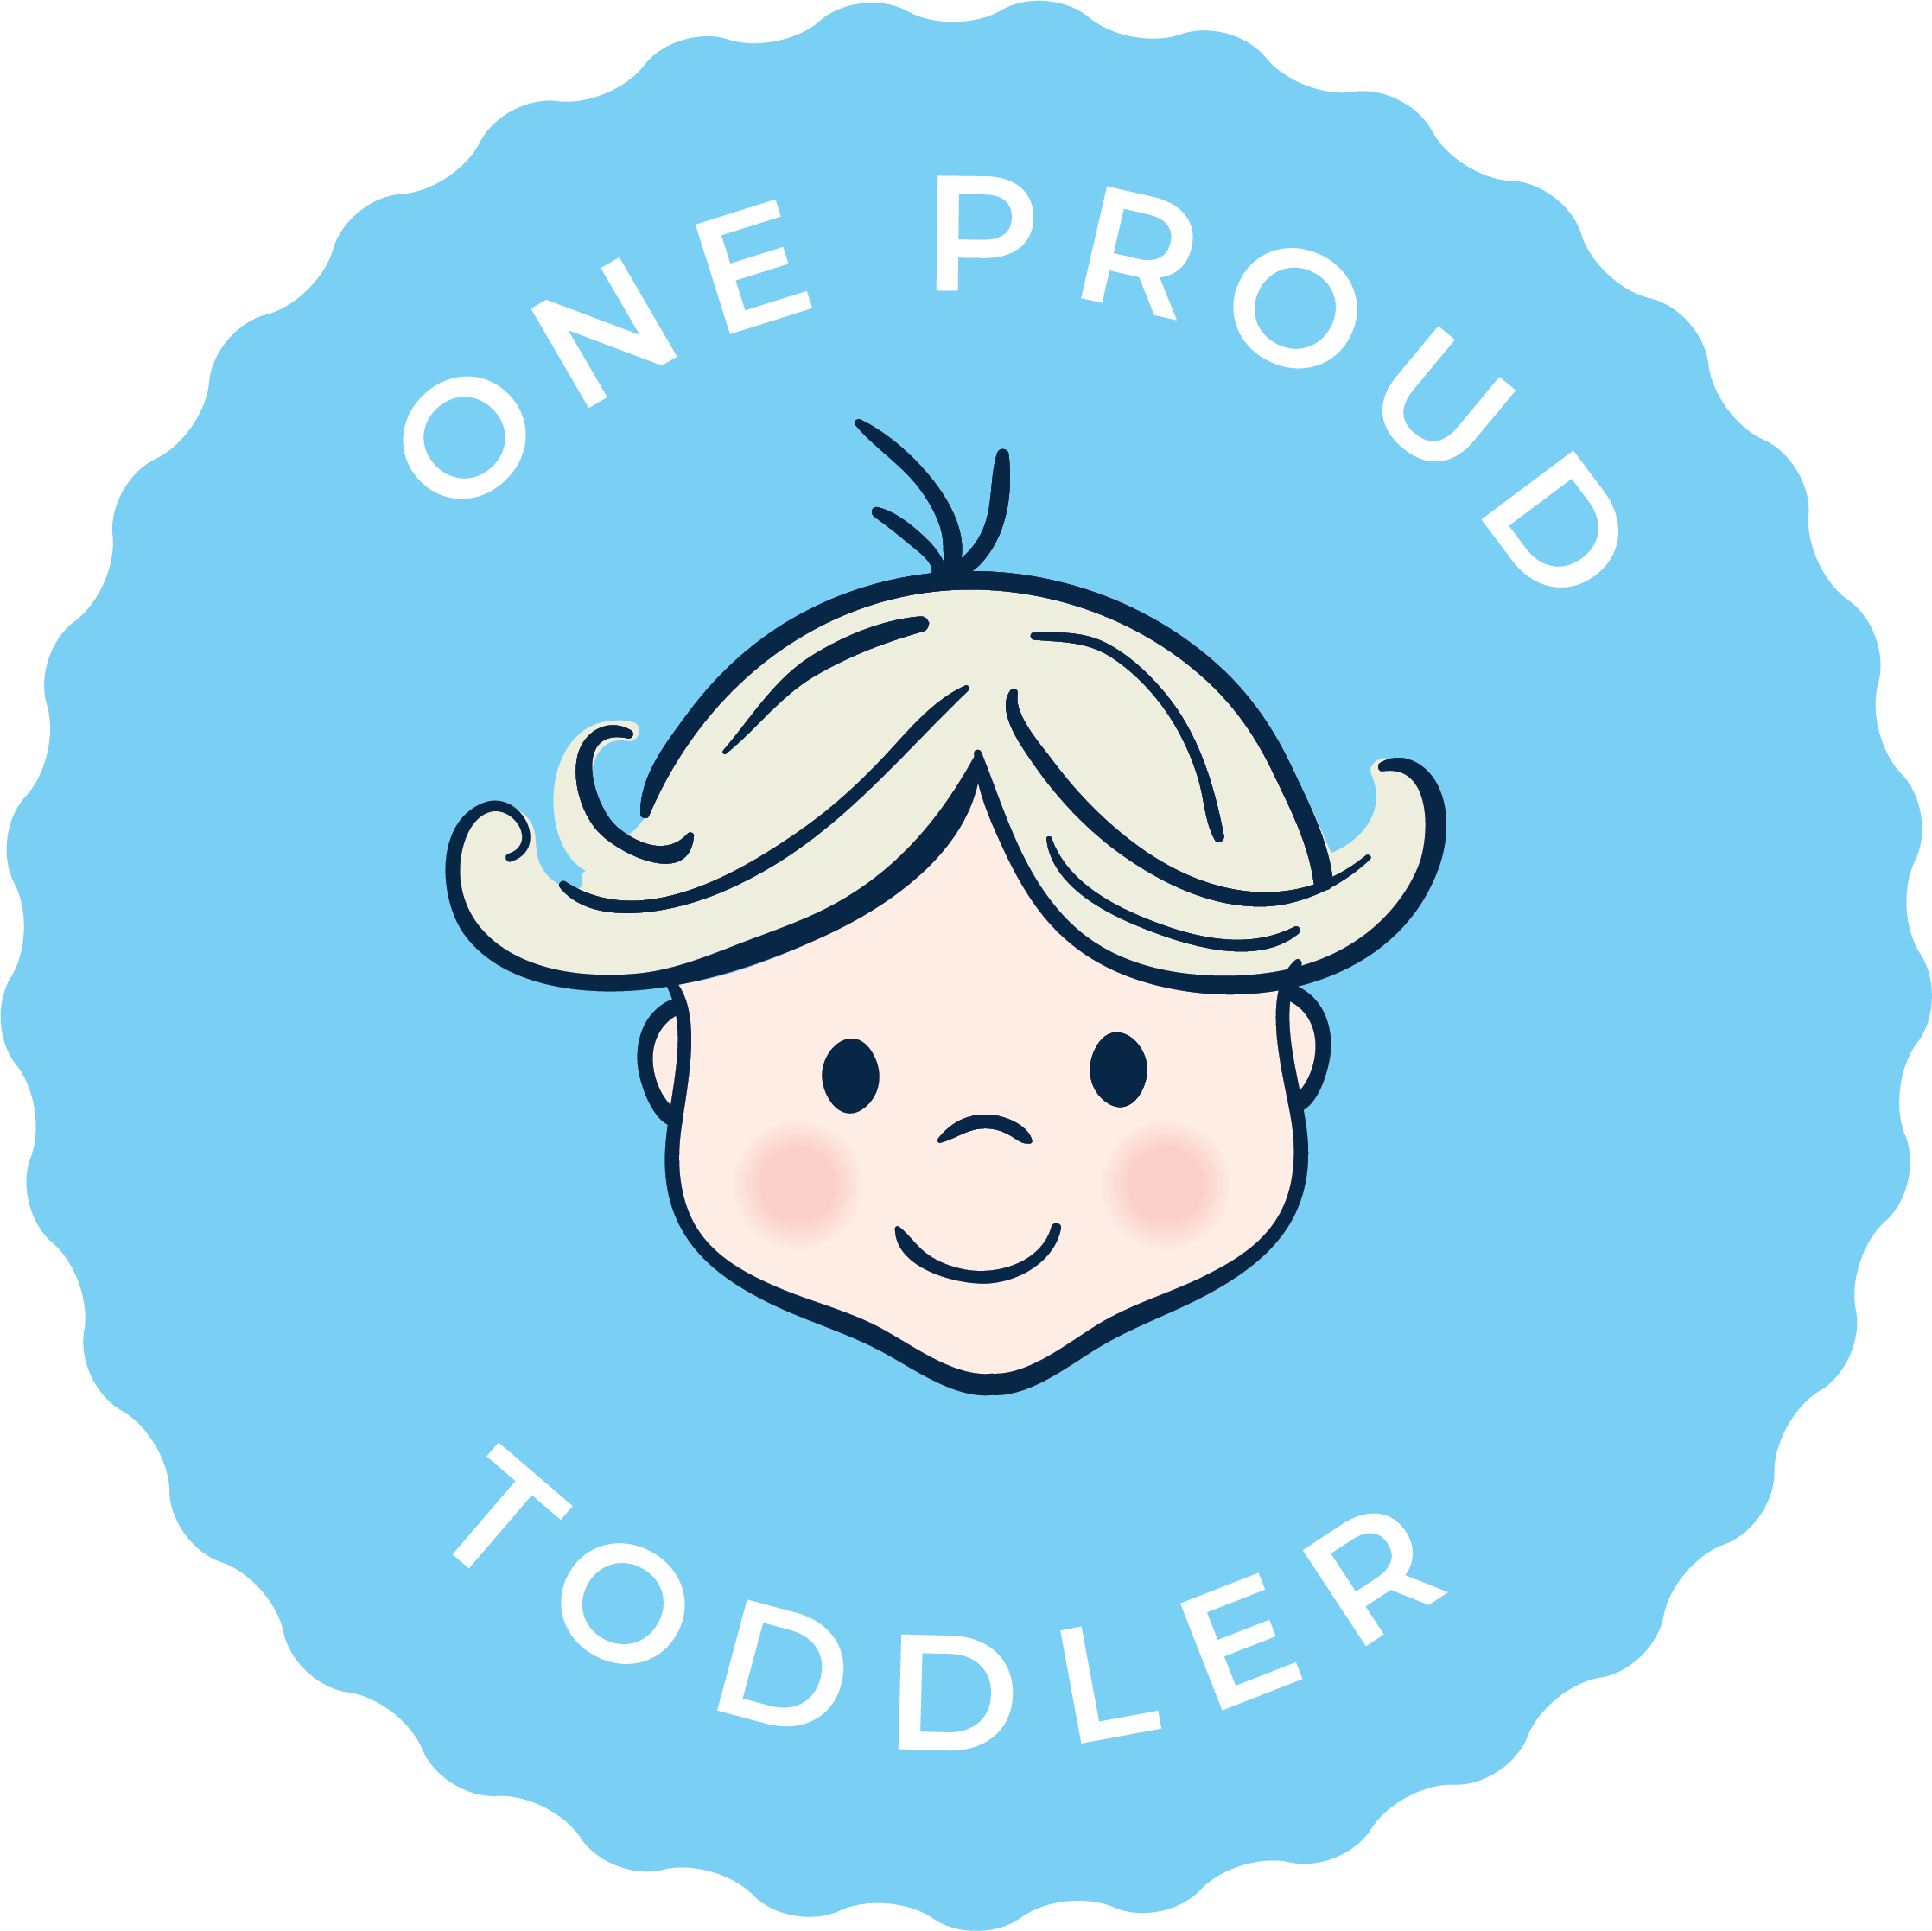 one proud toddler blue background logo